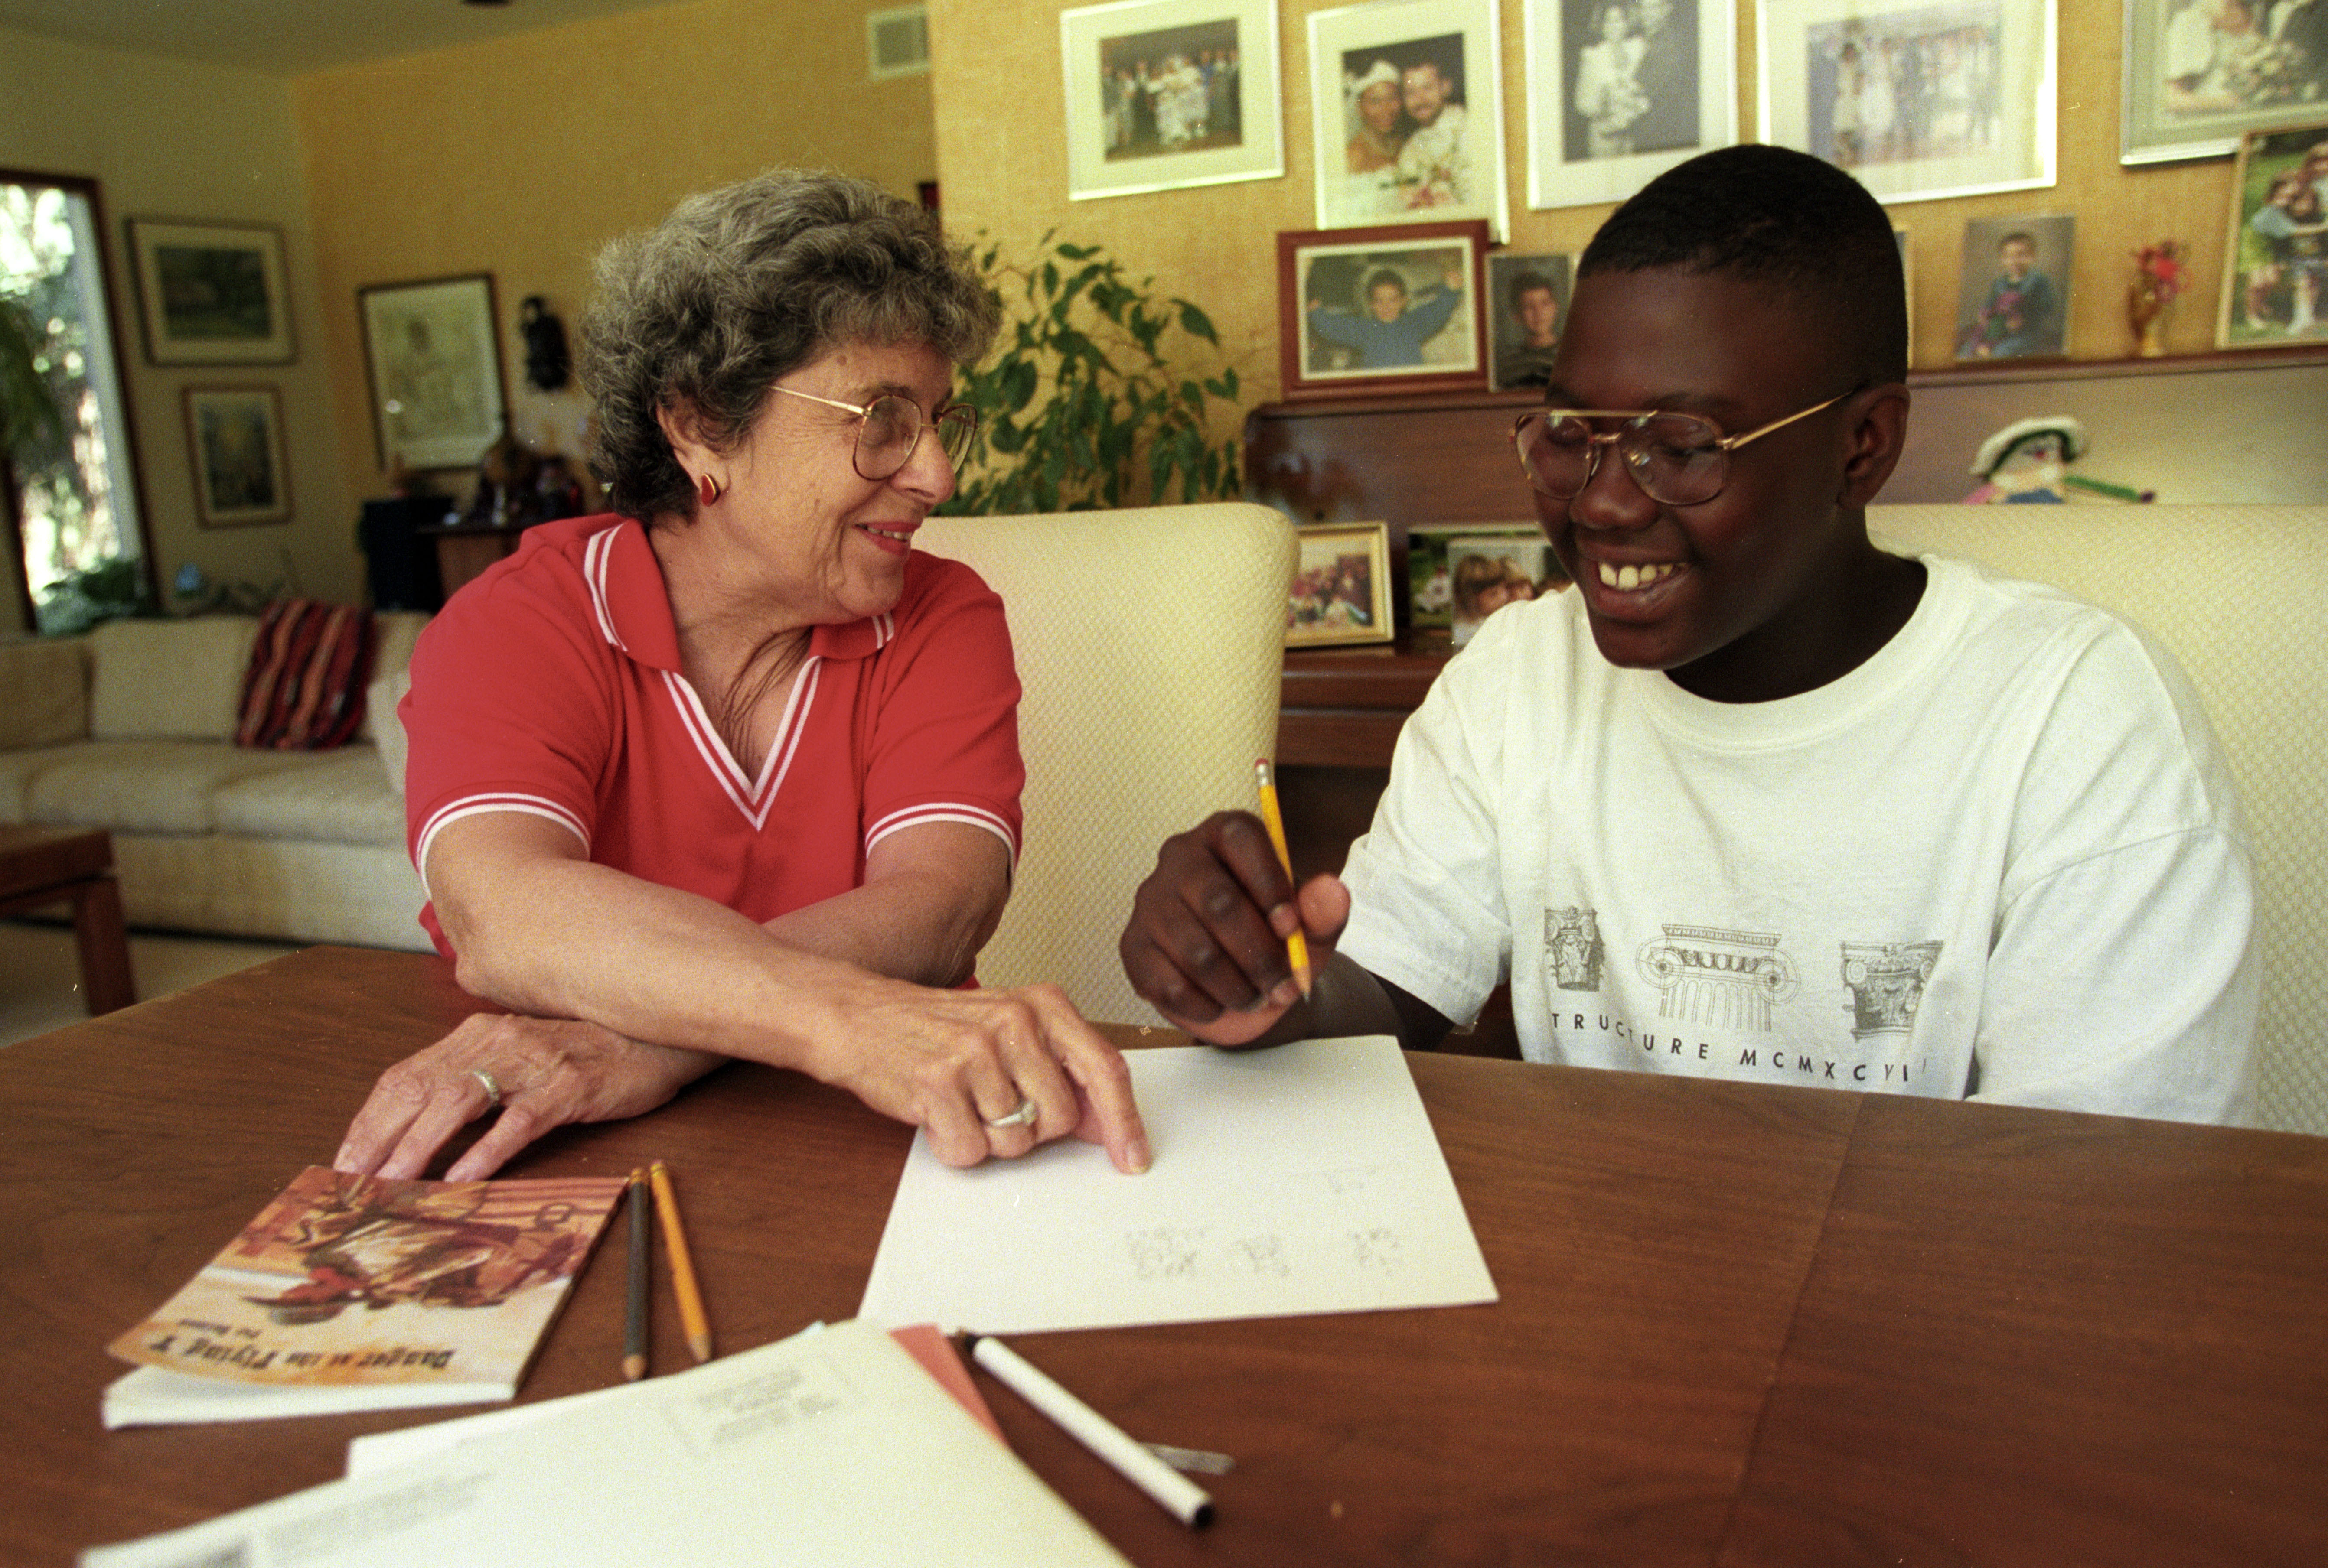 Doris Sperling With a Student at Her Home in Ann Arbor, July 1997 image